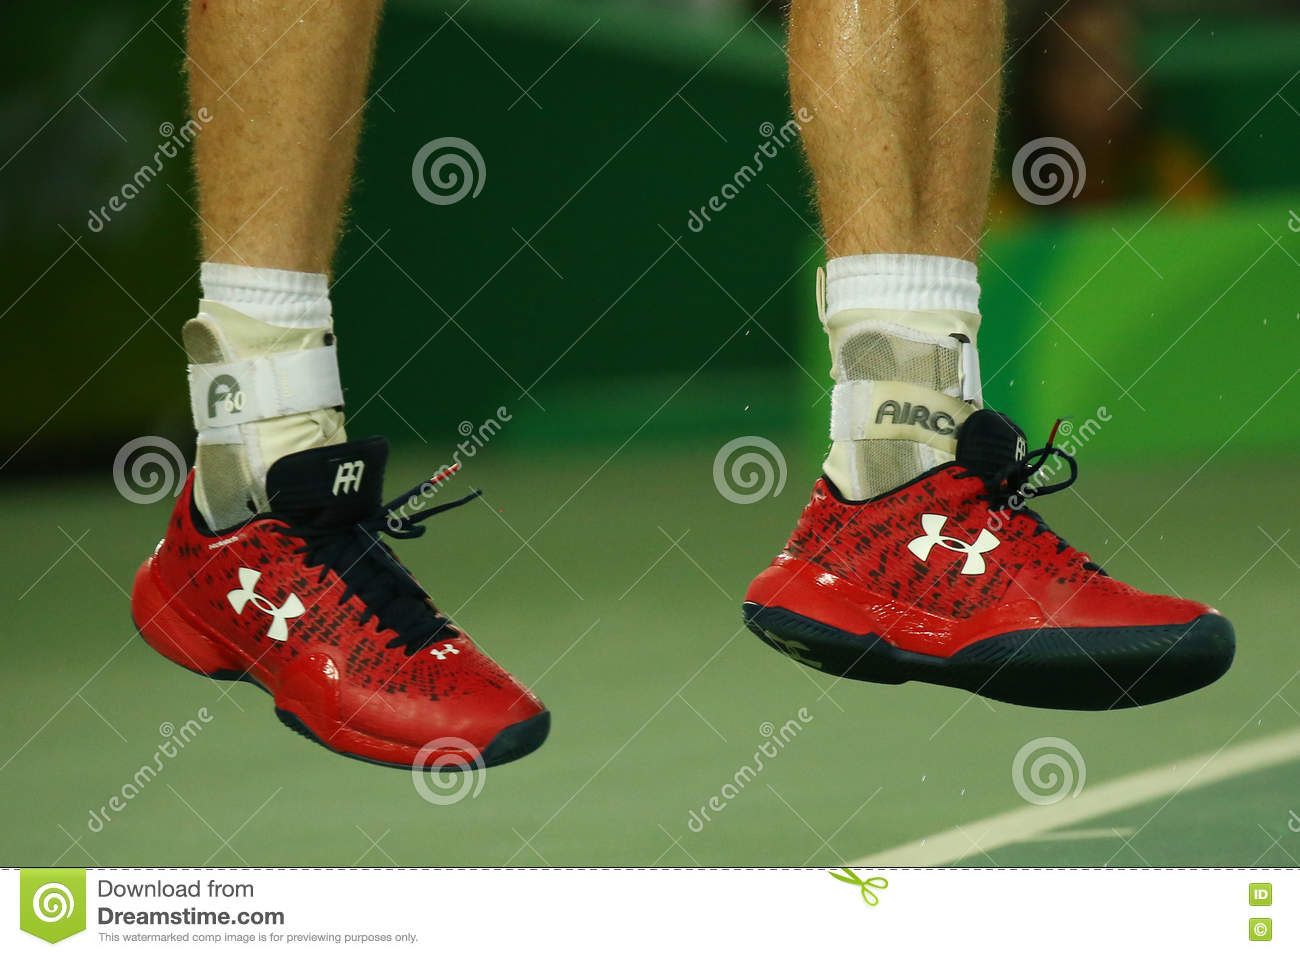 Andy Murray Tennis Shoes For Sale